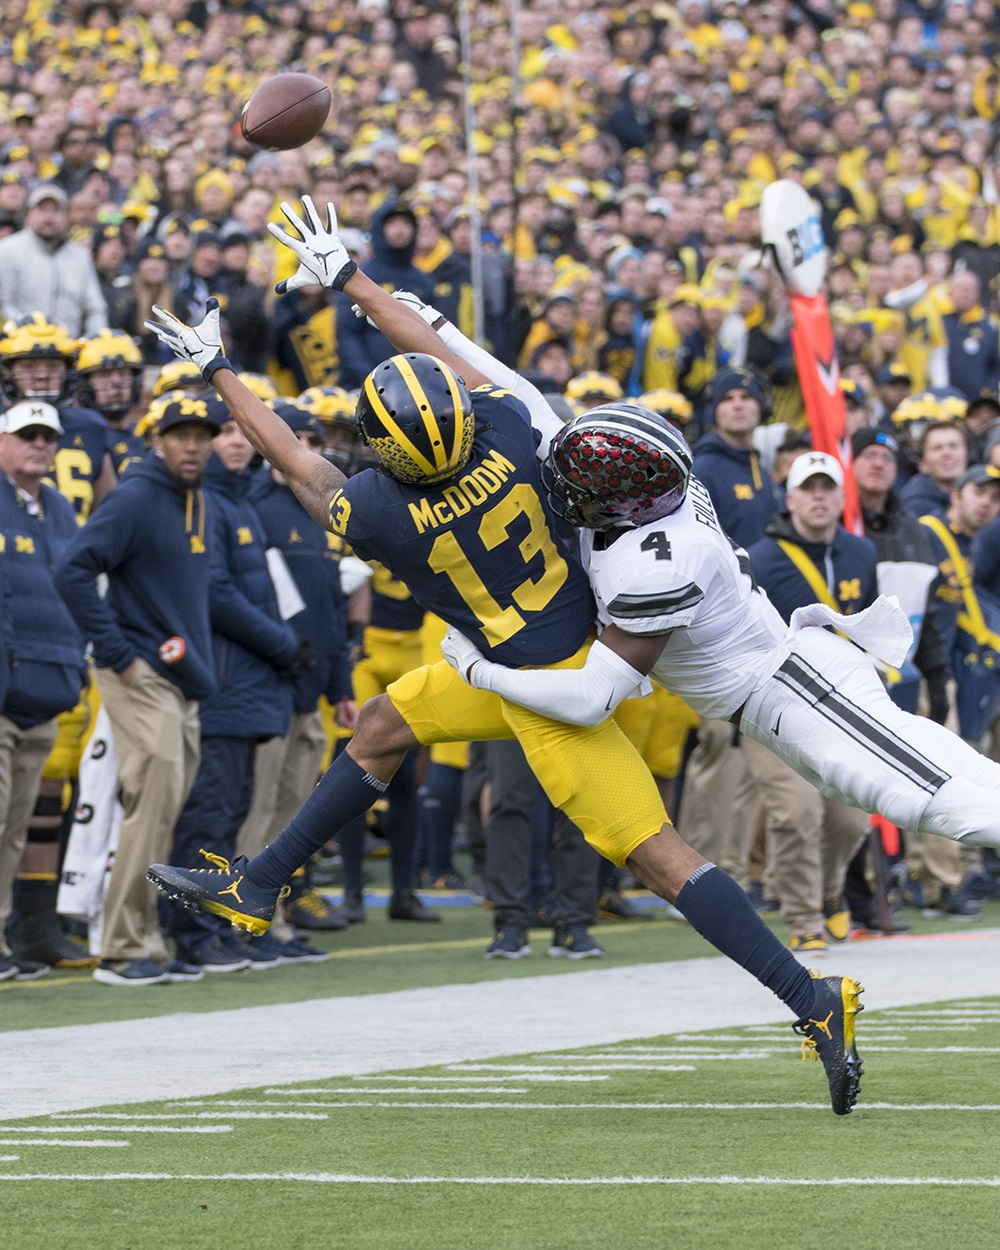 2017 Football Schedule - University of Michigan Athletics